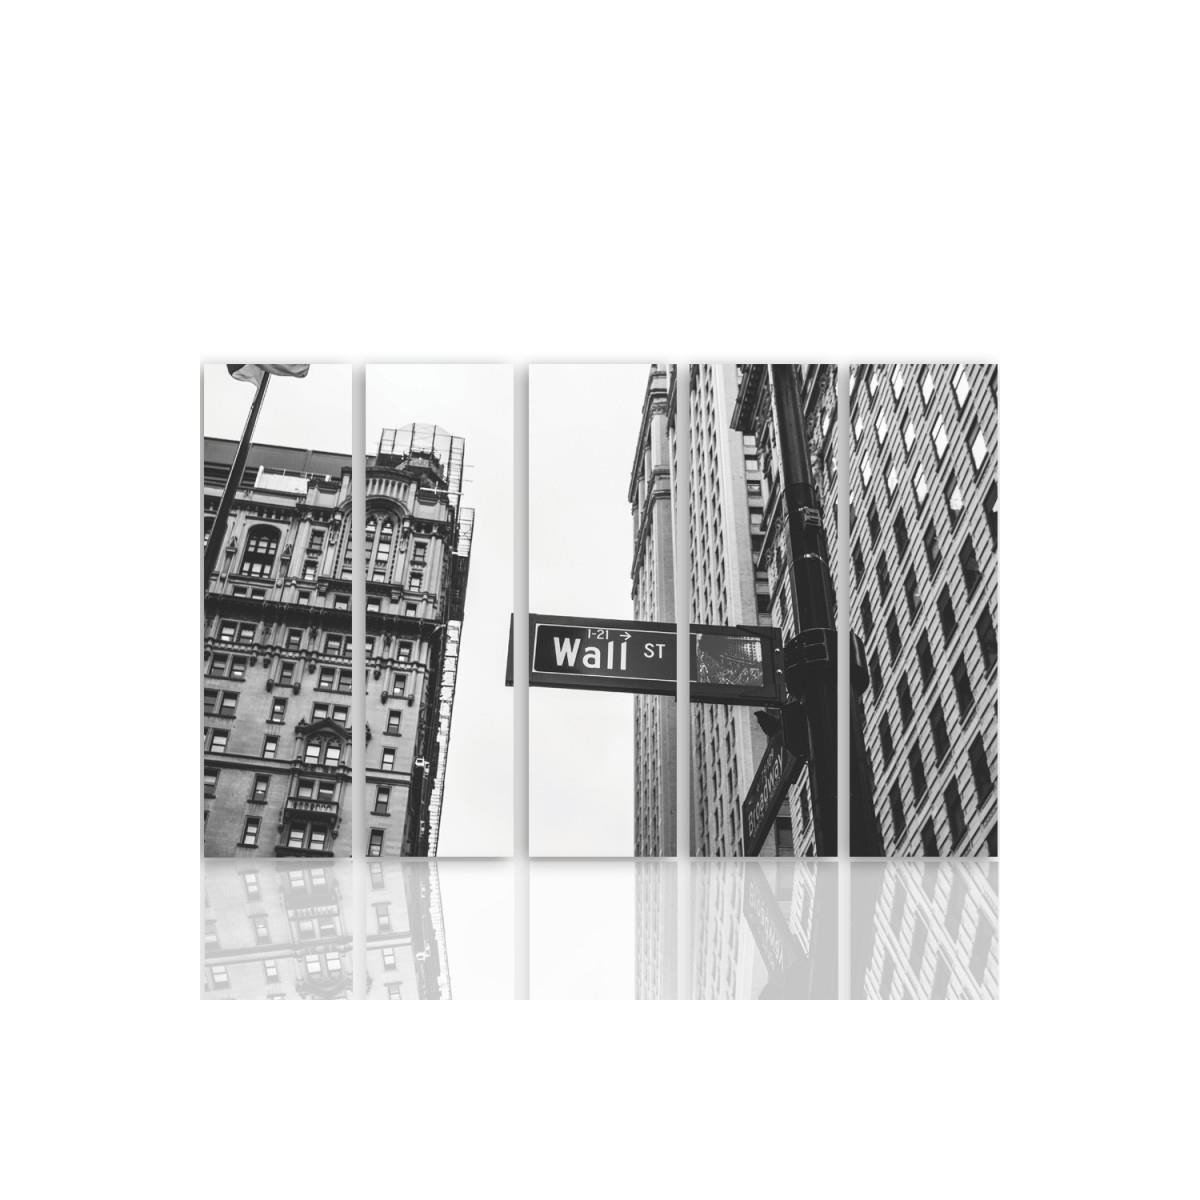 Five Part Picture On Canvas, Pentaptych, Wall Street100x150